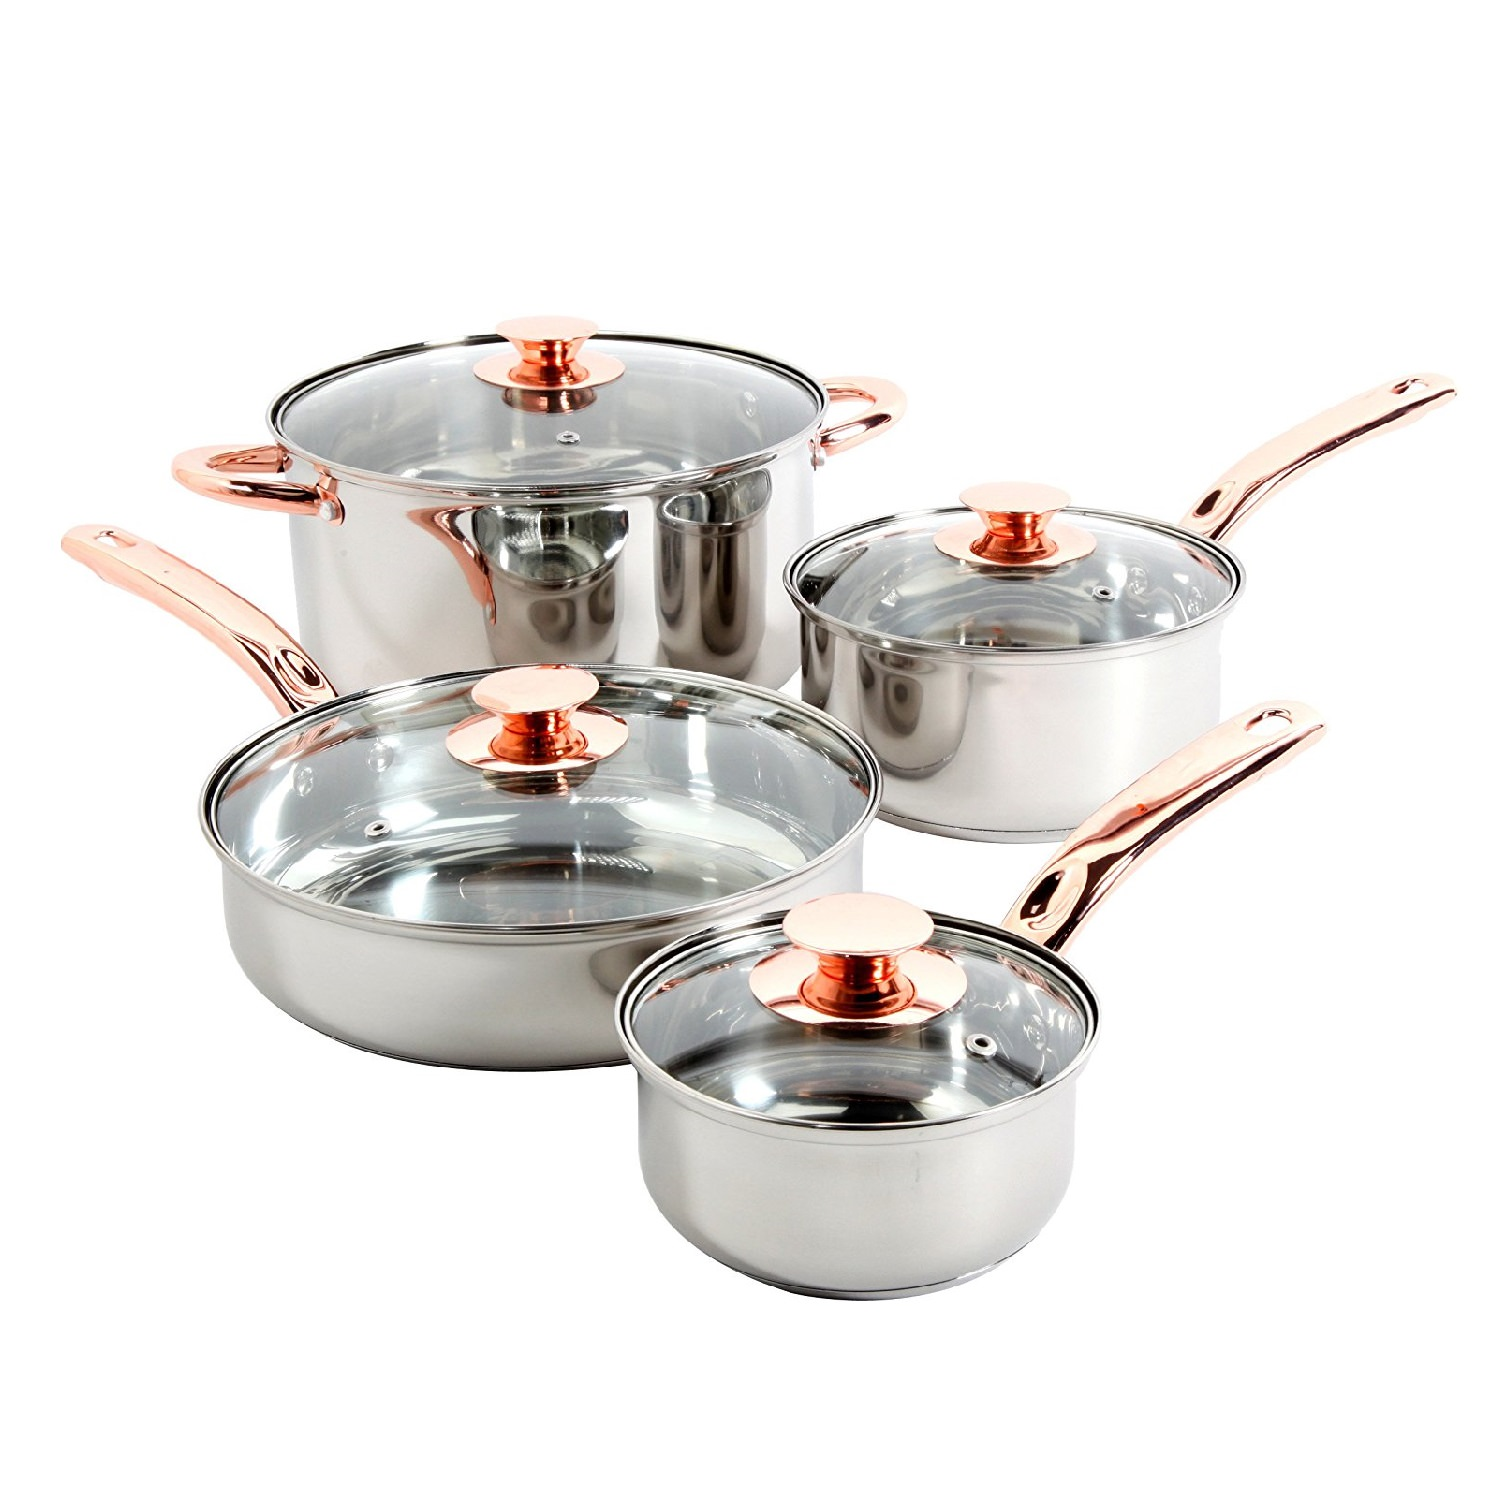 Sunbeam Ansonville 8 Pc. Cookware Set